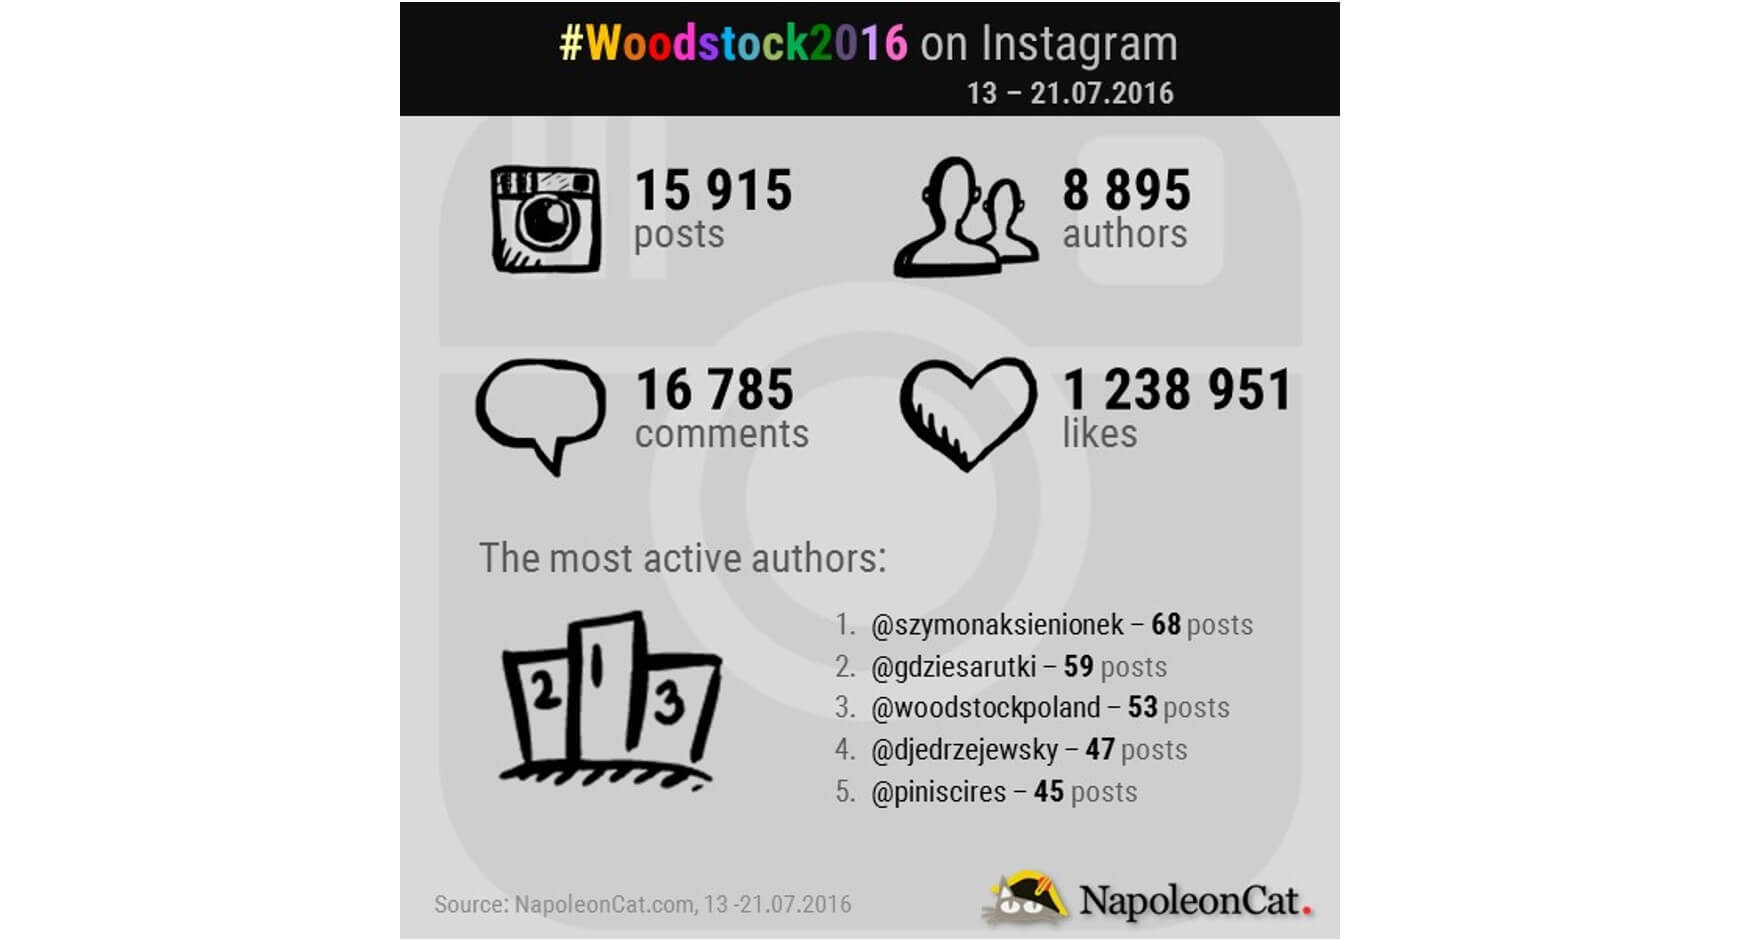 Hashtag Woodstock2016 on Instagram_NapoleonCat.com blog